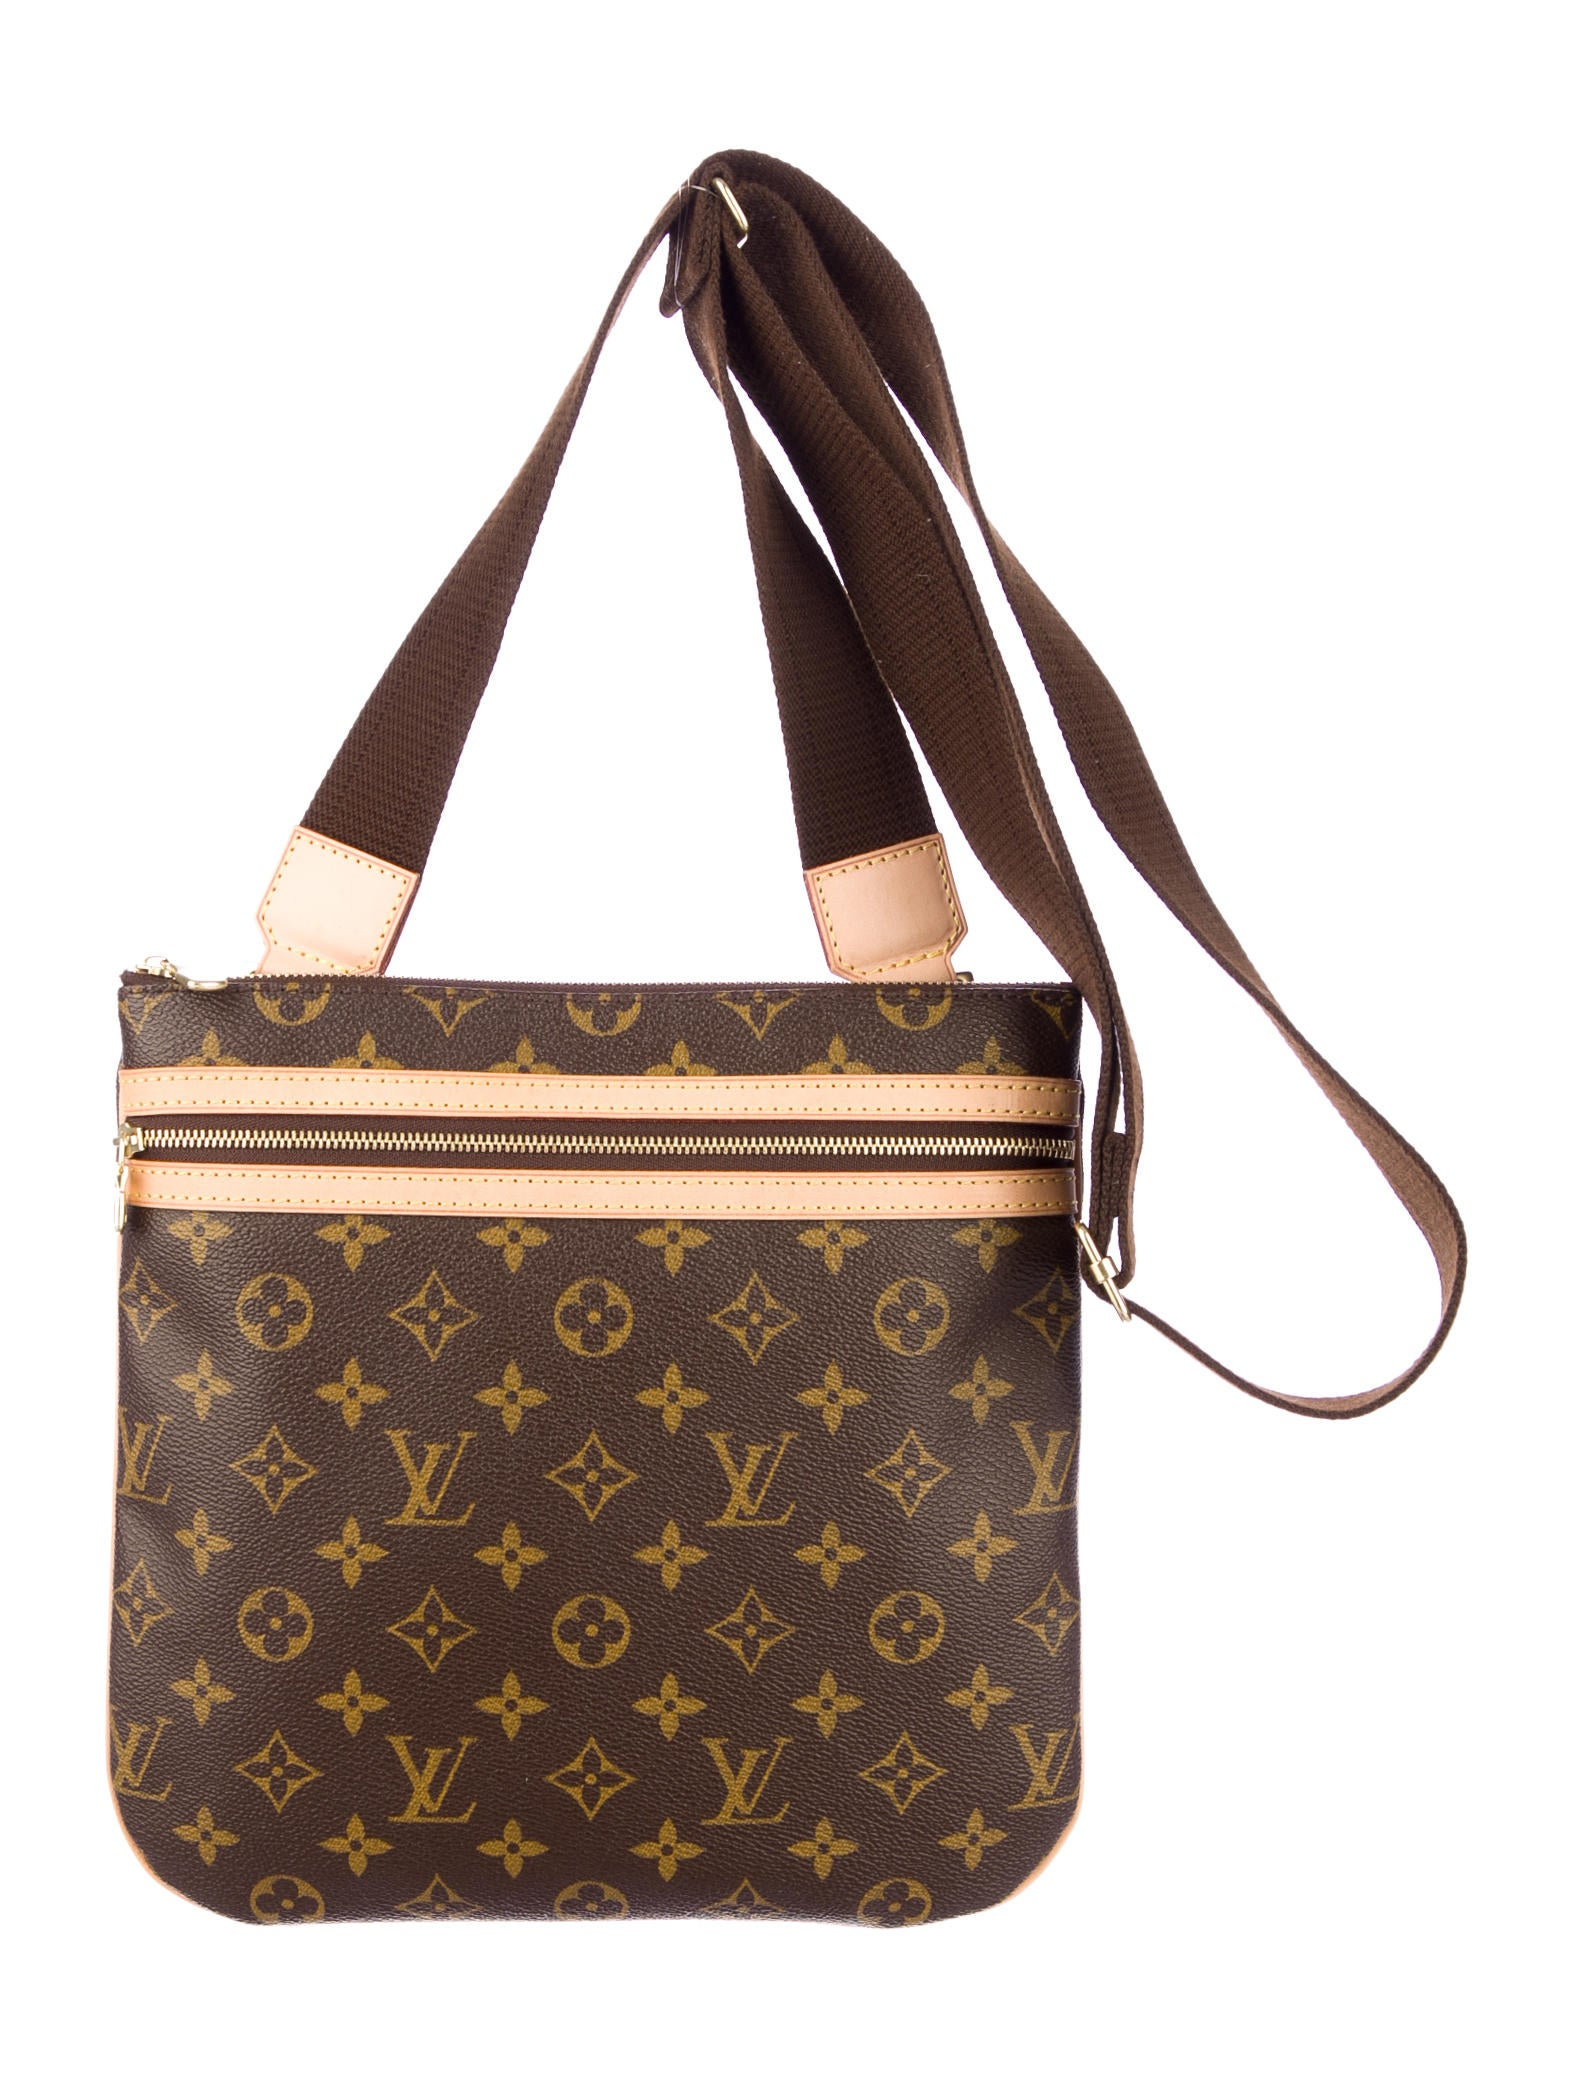 Elegant However, Some Women Find It Hard To Go Back To Their Normal Routine  Paired With High Heeled Boots, And A Customized Louis Vuitton Bag With Inscription Its Not